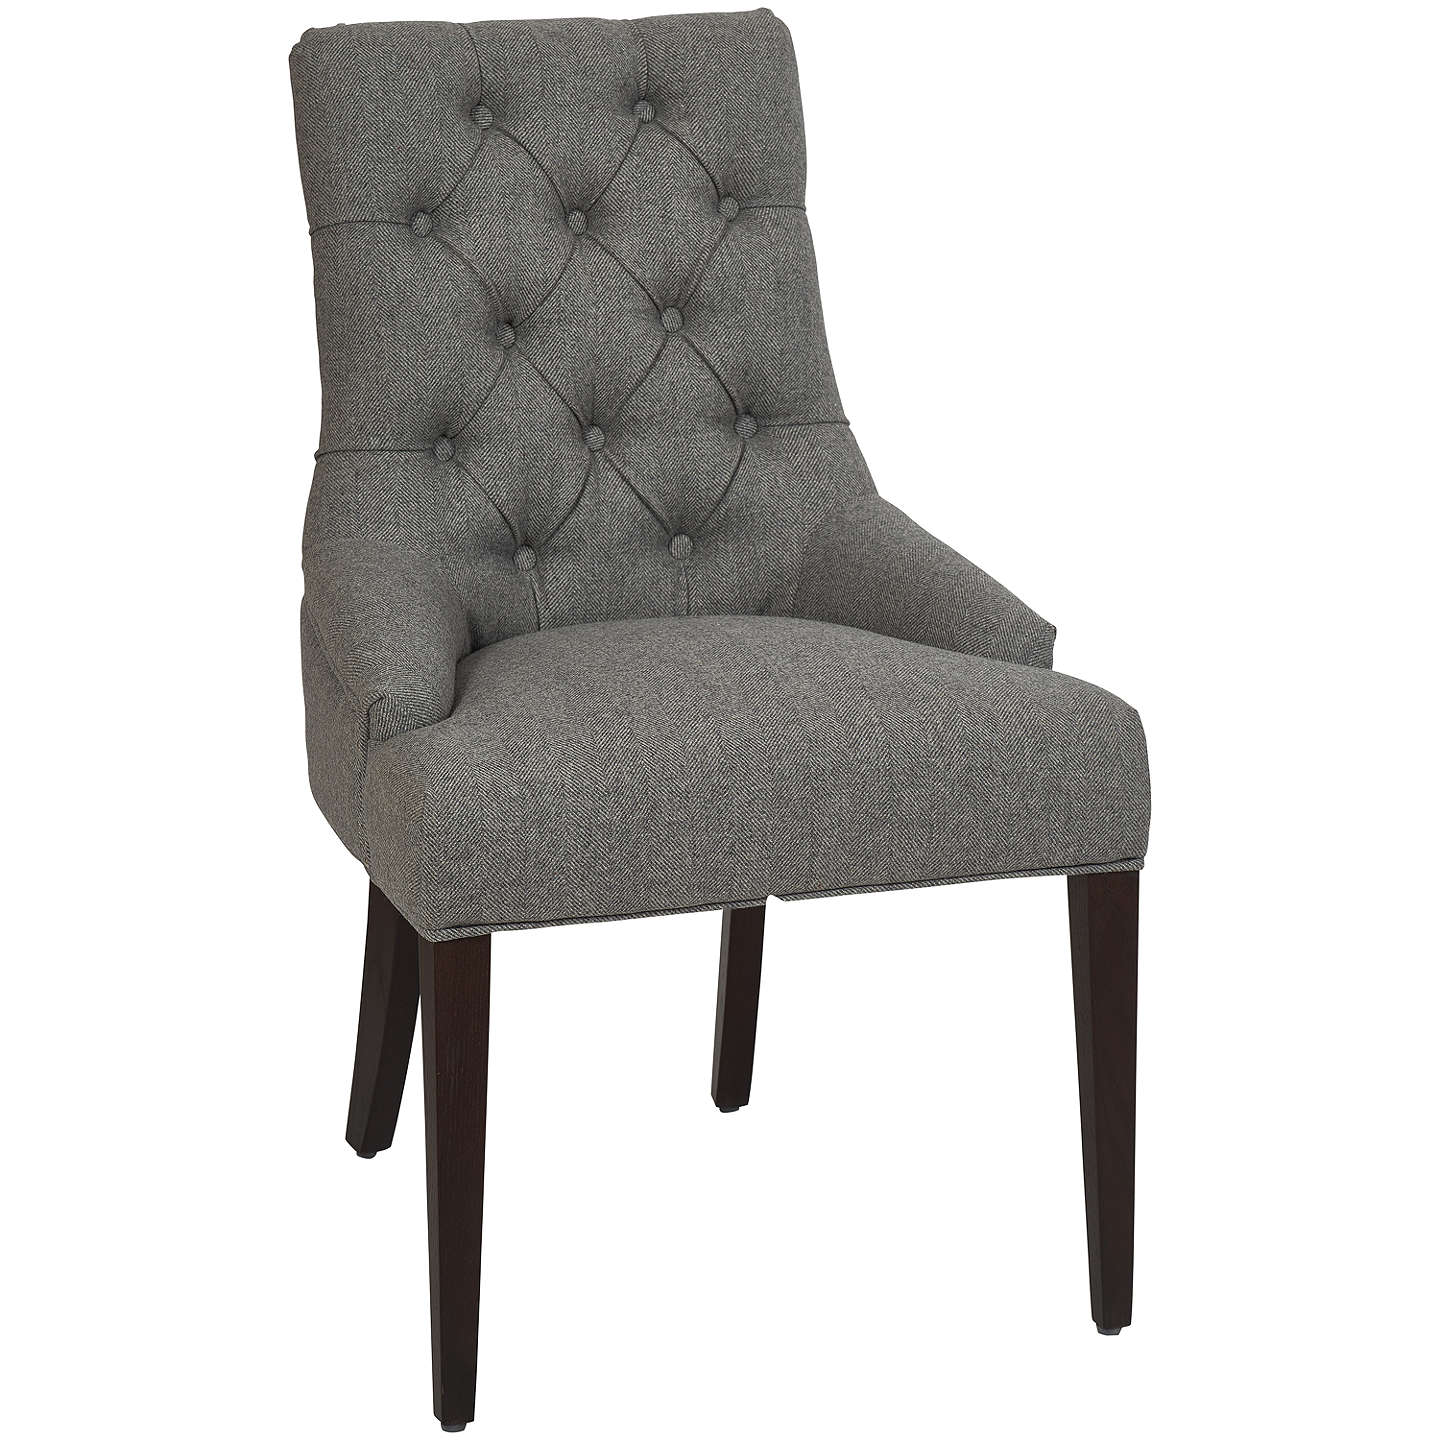 Neptune henley upholstered linen dining chair at john lewis for Upholstered linen dining chairs